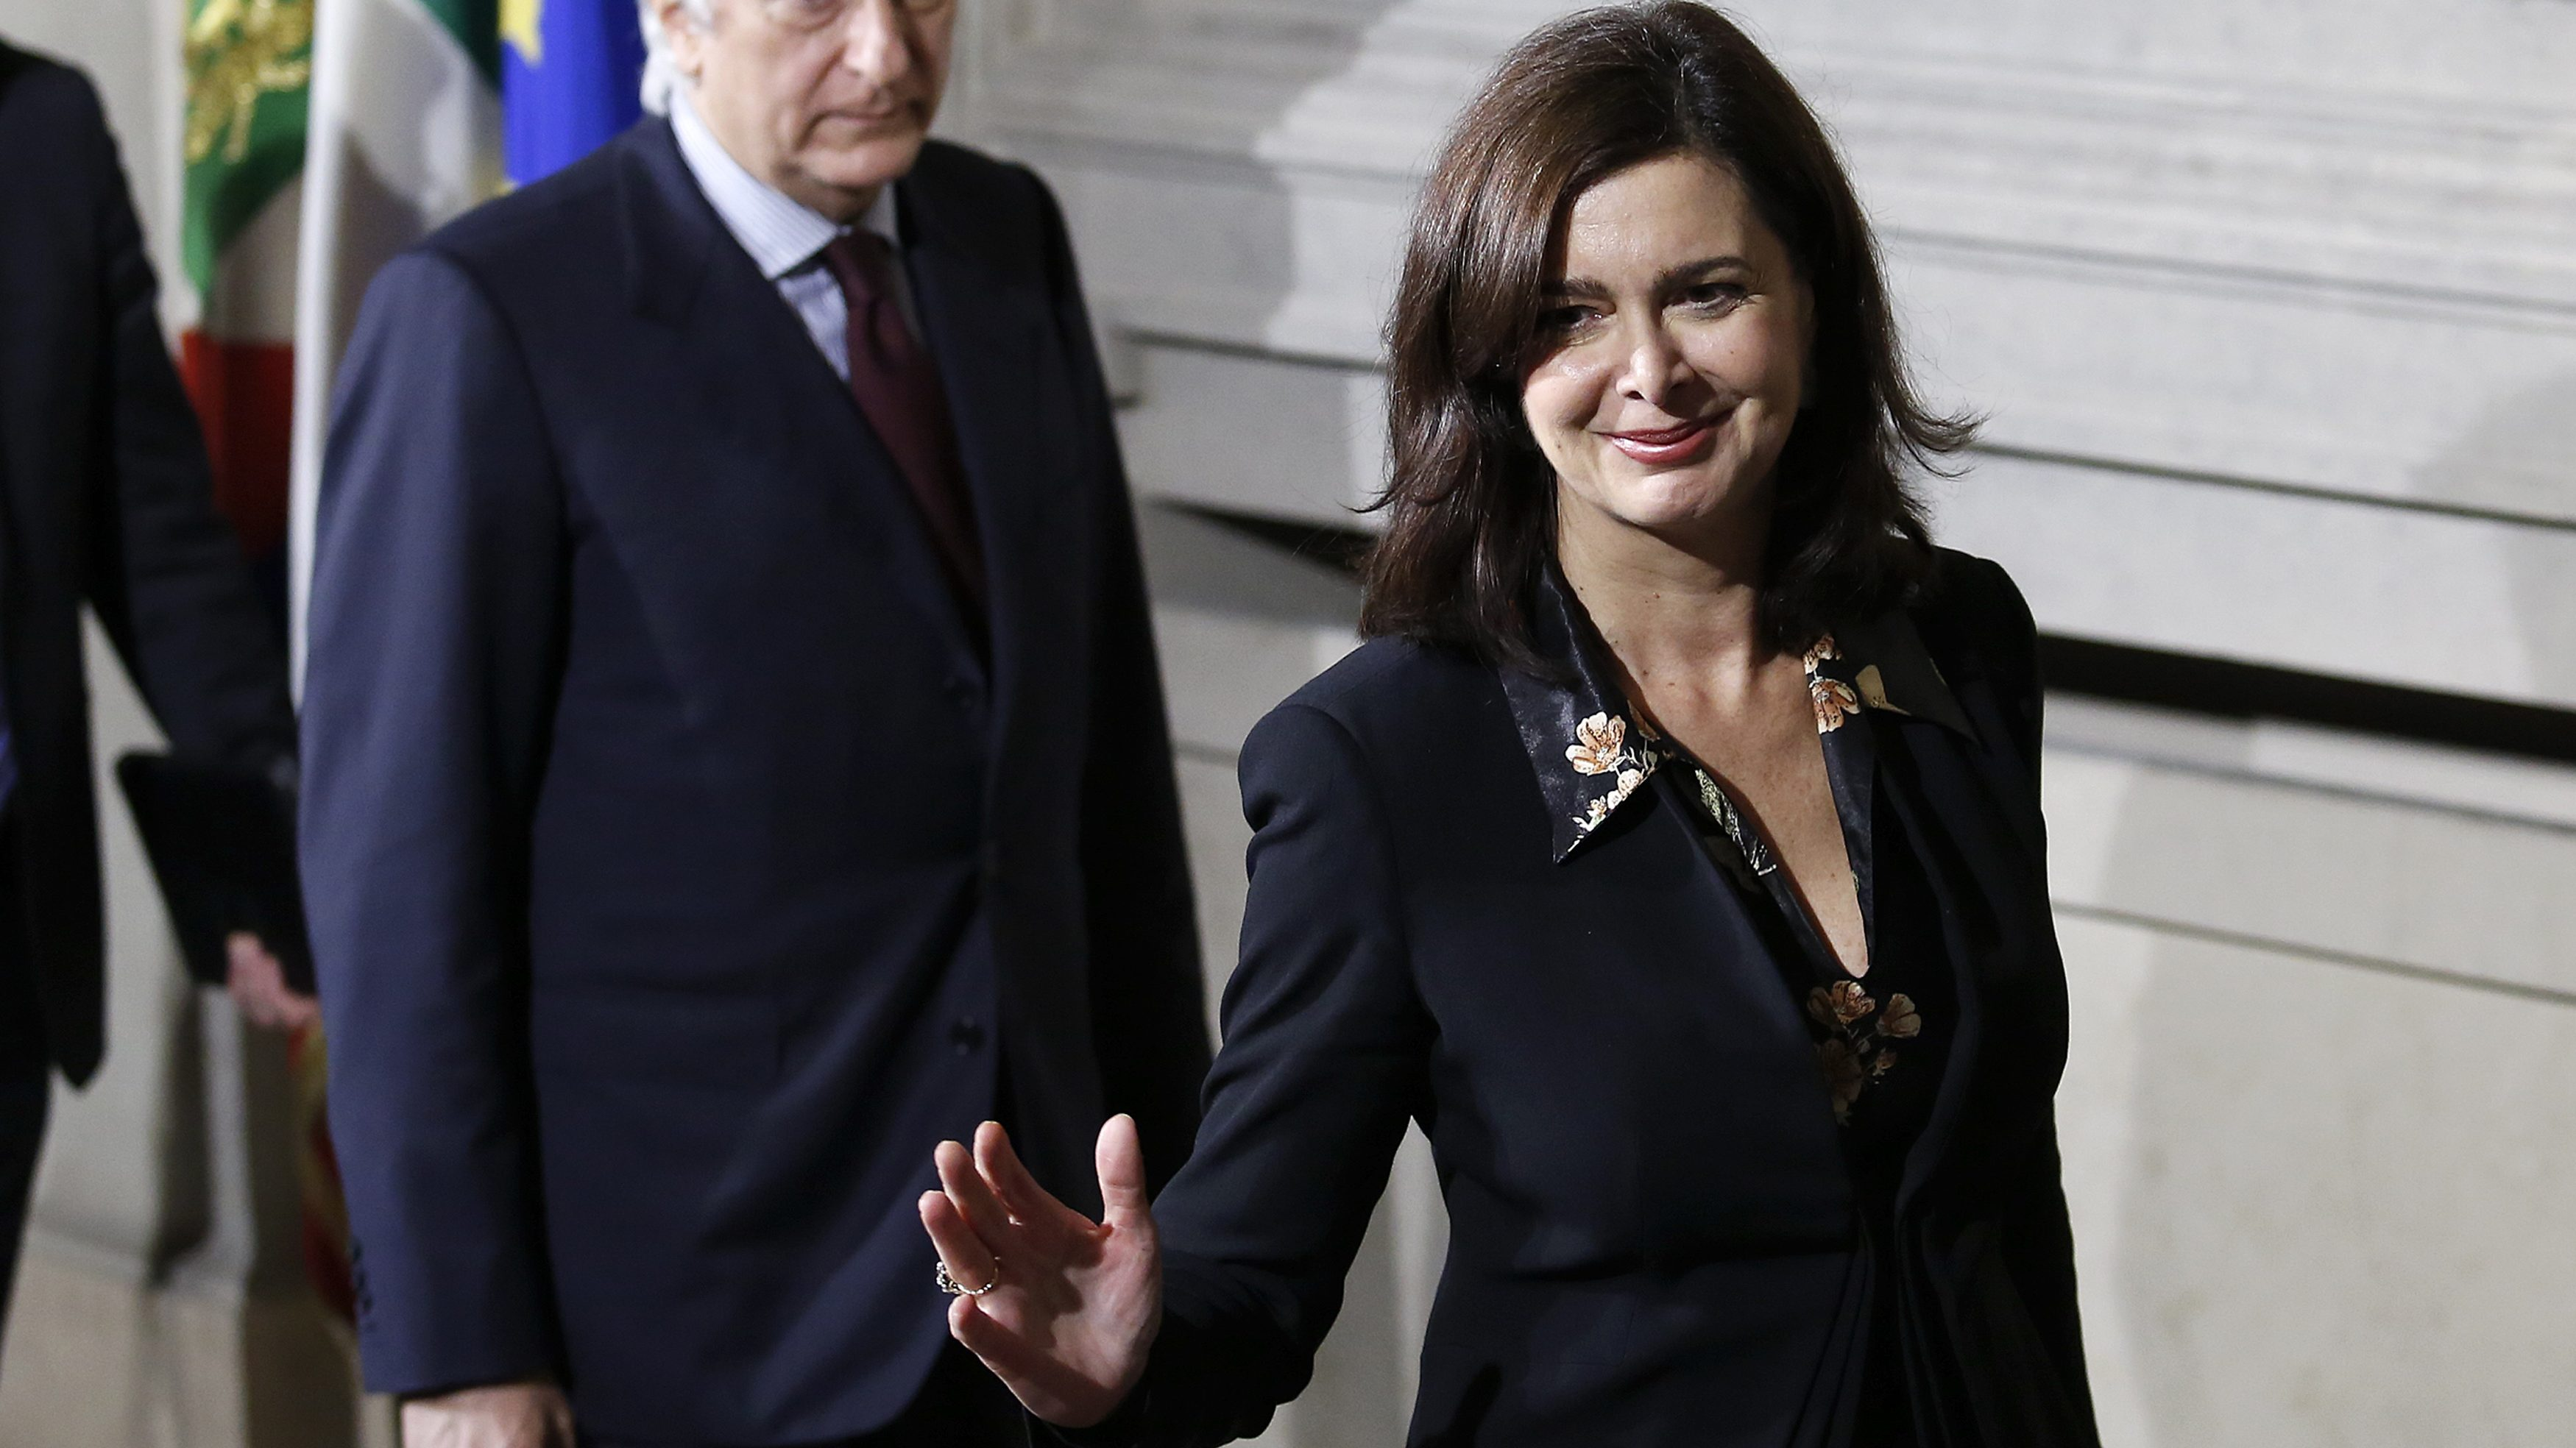 Italy's lower house President Laura Boldrini smiles at the end of the first day of consultations with Italian President Giorgio Napolitano at the Quirinale Palace in Rome February 14, 2014. Italian centre-left leader Matteo Renzi is one step away from forming a new government after he swiftly eliminated party rival Enrico Letta as prime minister. New numbers showing how slowly the economy is growing highlight the huge challenge ahead. After Renzi and the rest of the centre-left Democratic Party (PD) leadership forced Letta's hand by withdrawing their support at a special meeting on Thursday, the prime minister handed his resignation to President Giorgio Napolitano.